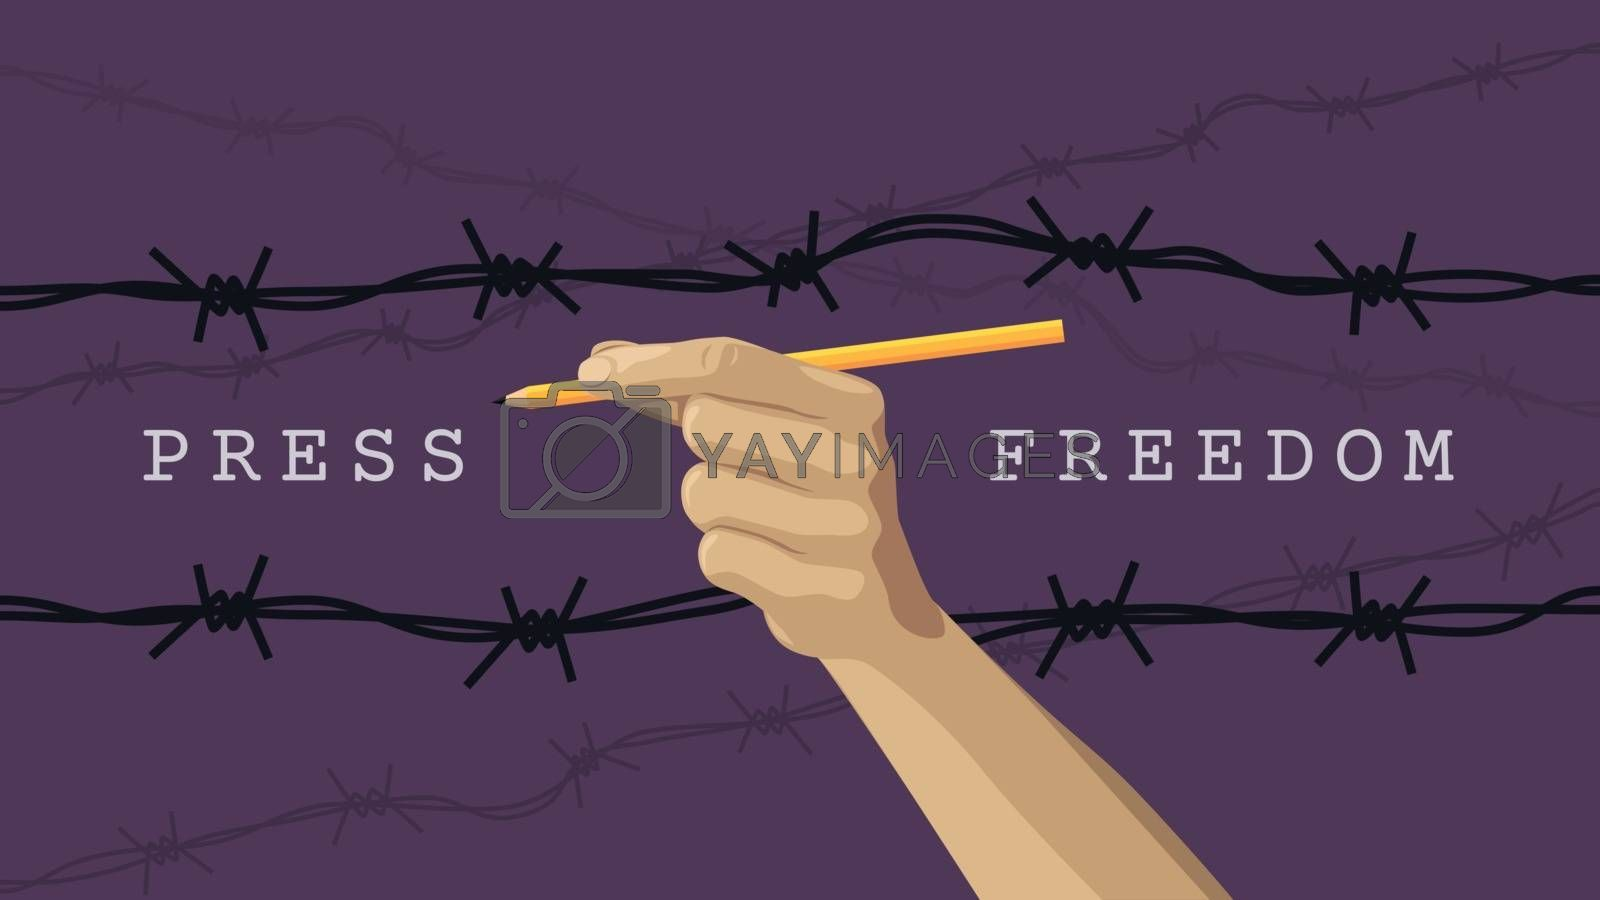 Detailed flat vector illustration of a hand holding a pen between layers of barbed wires. Purple background.